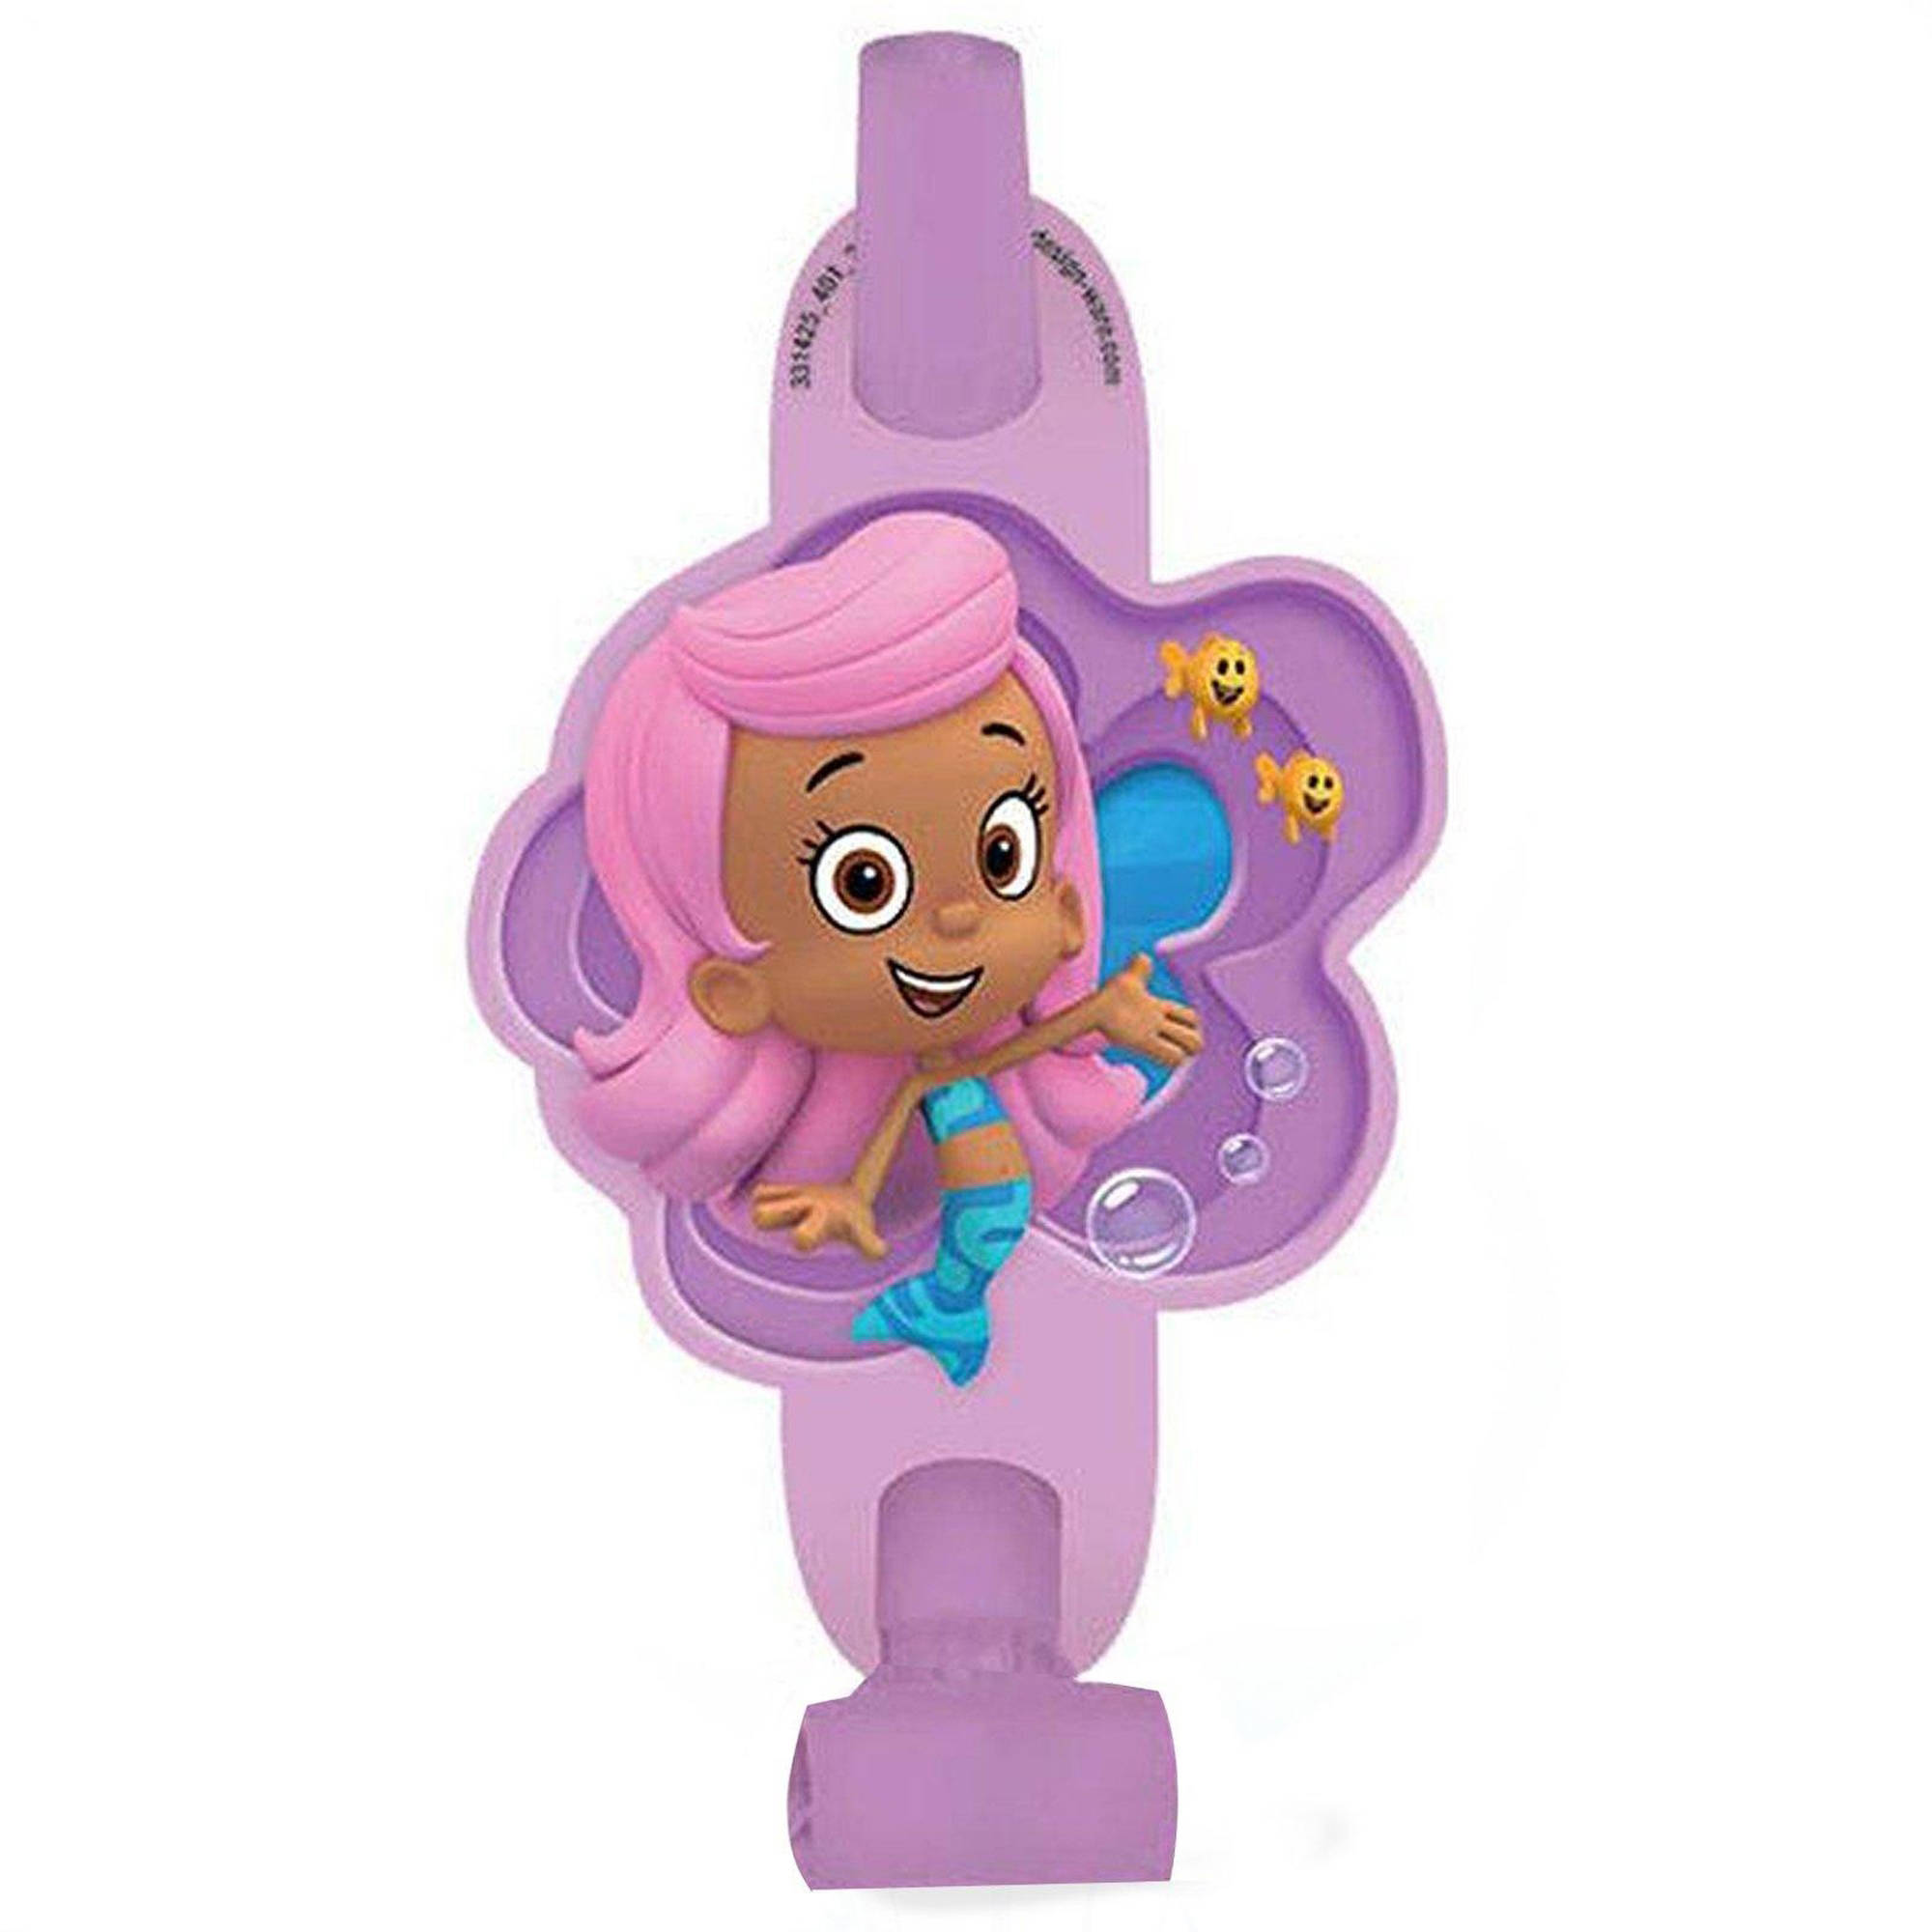 Bubble Guppies Blowouts, 8pk